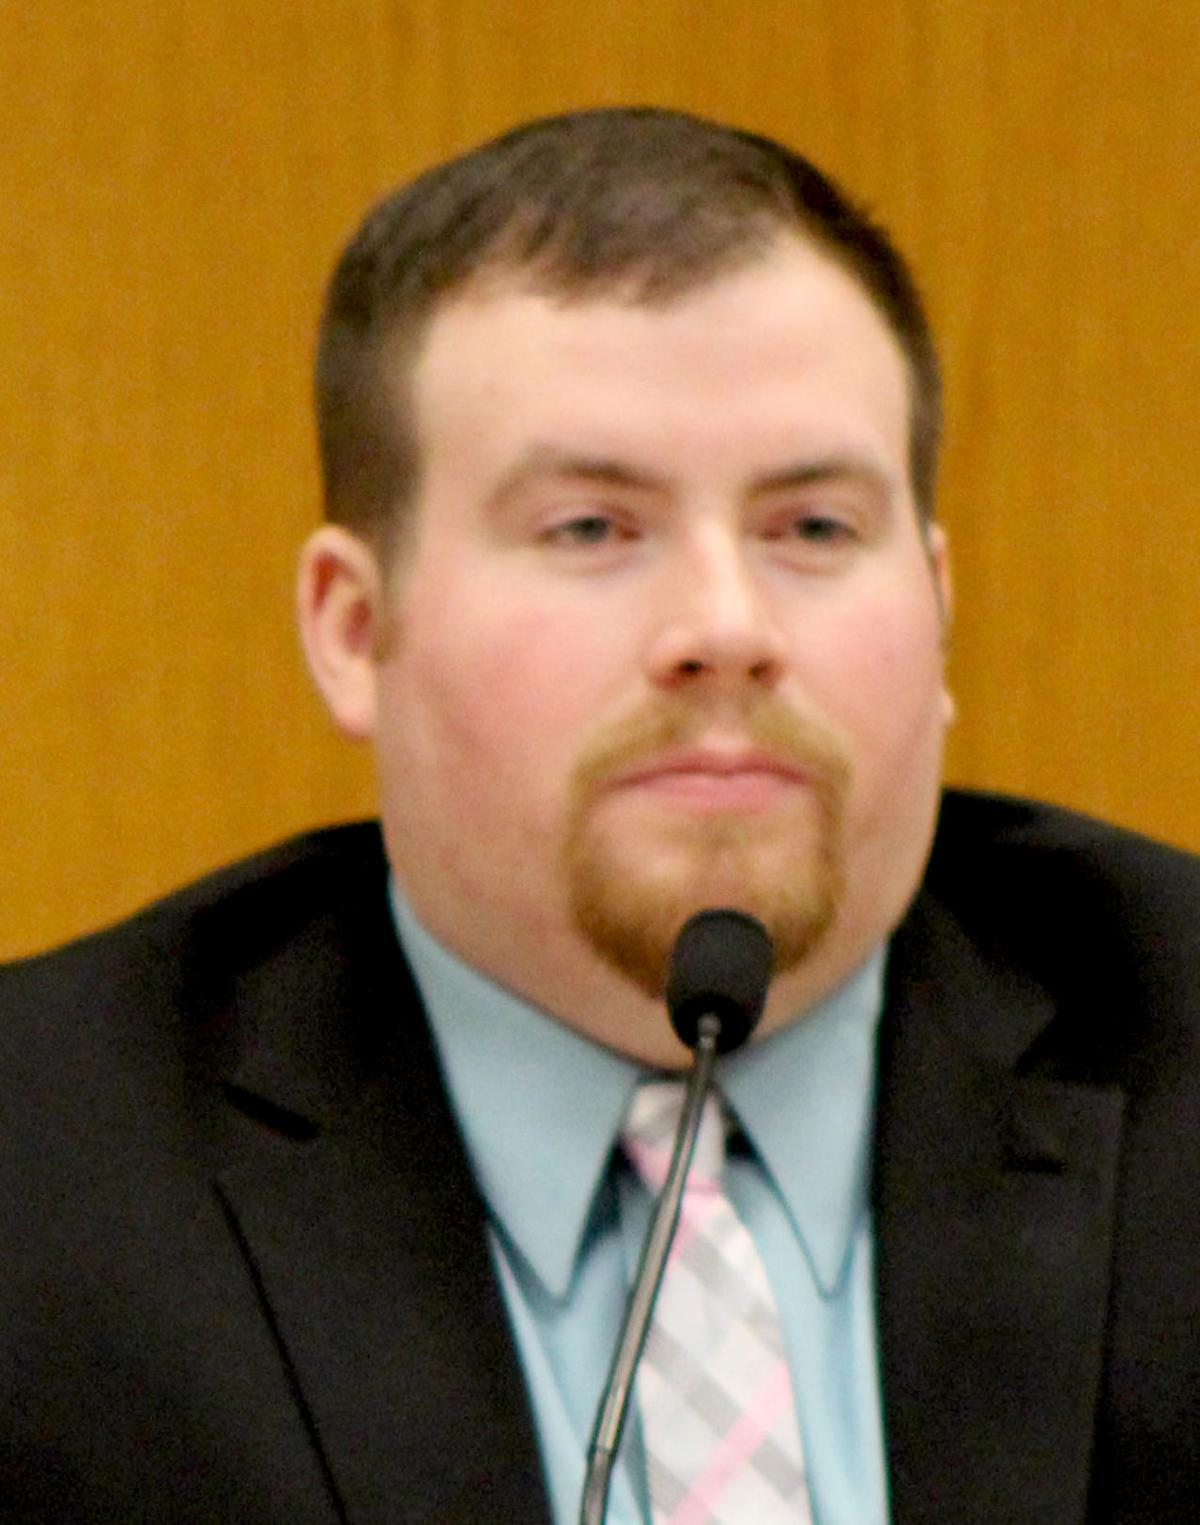 Beaver Dam man found guilty of 2017 reckless homicide